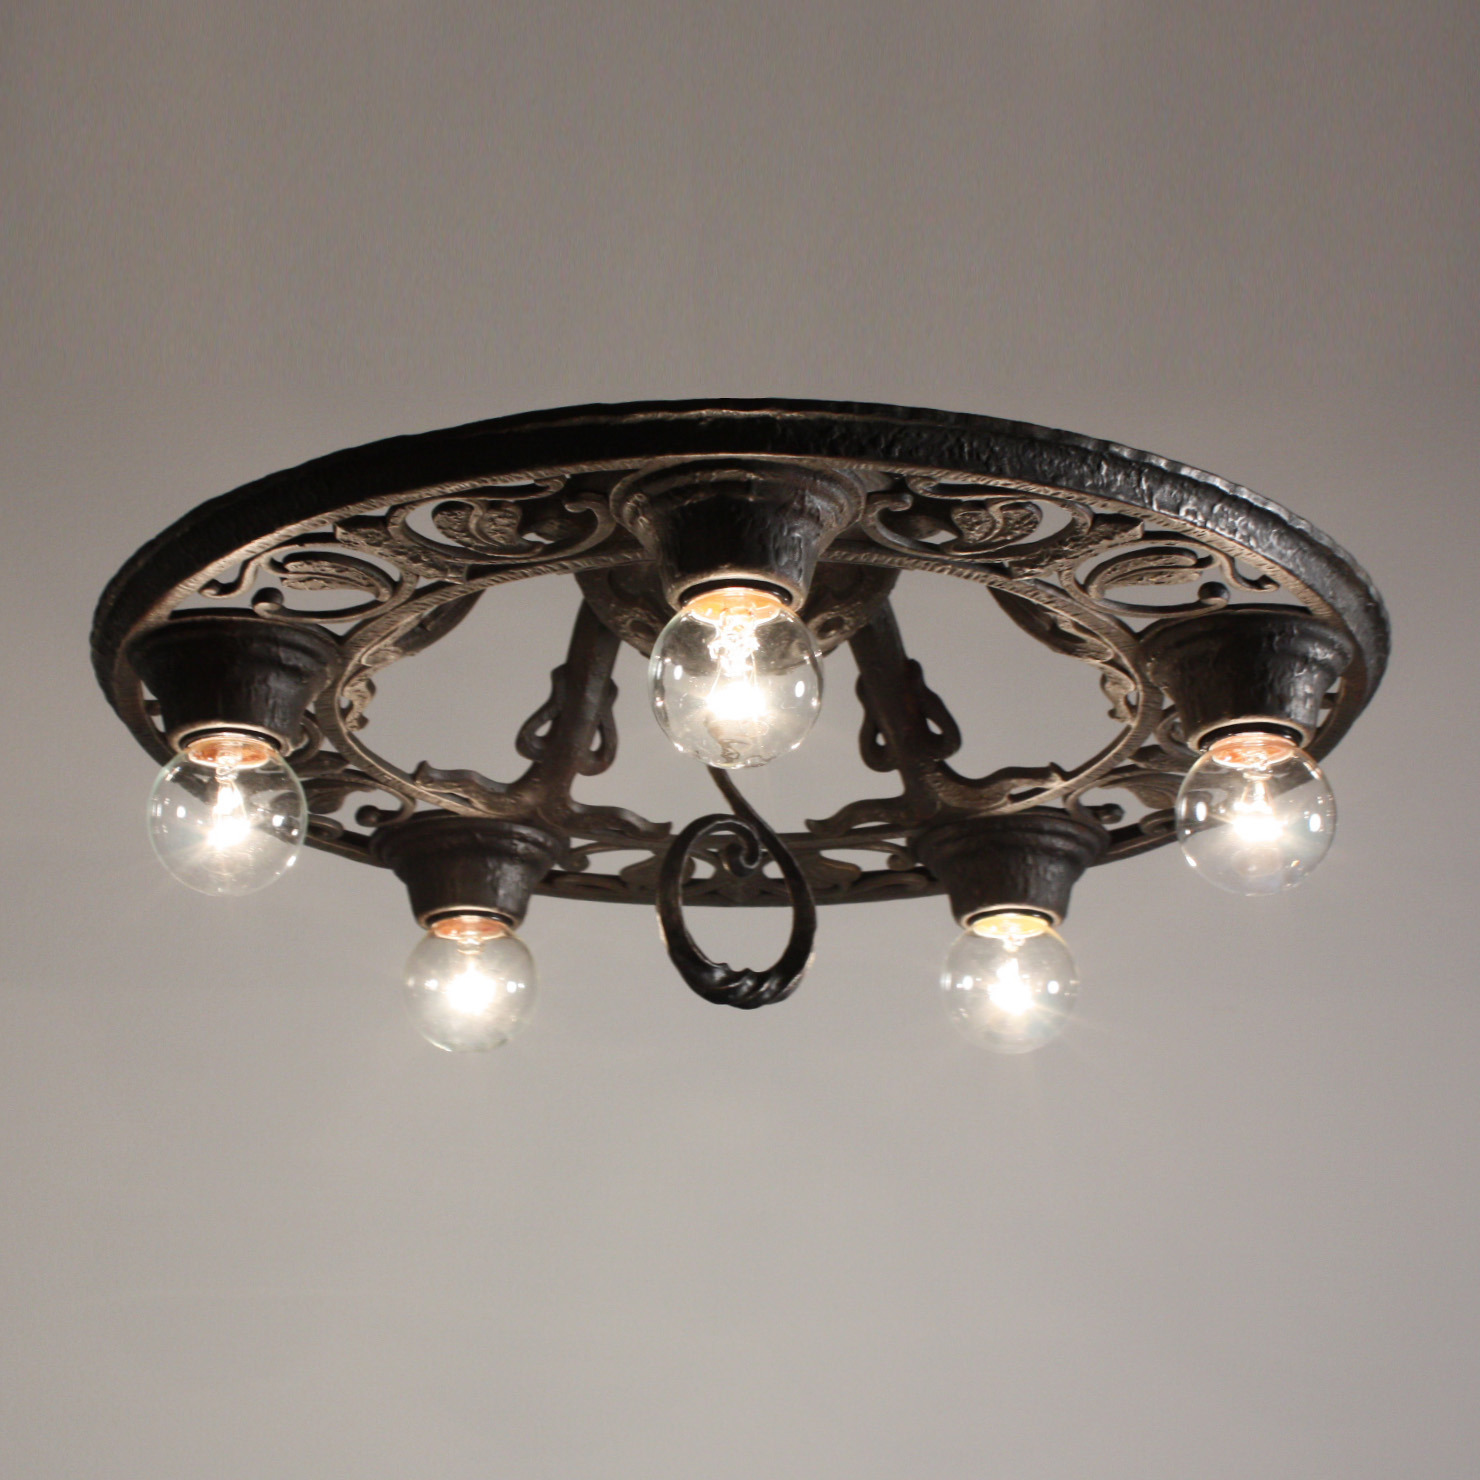 Fantastic Antique Five Light Cast Iron Flush Mount Chandelier Salvaged Out Of Nashville And Dating From The 1920 S Tudor Fixture Begins With A Domed